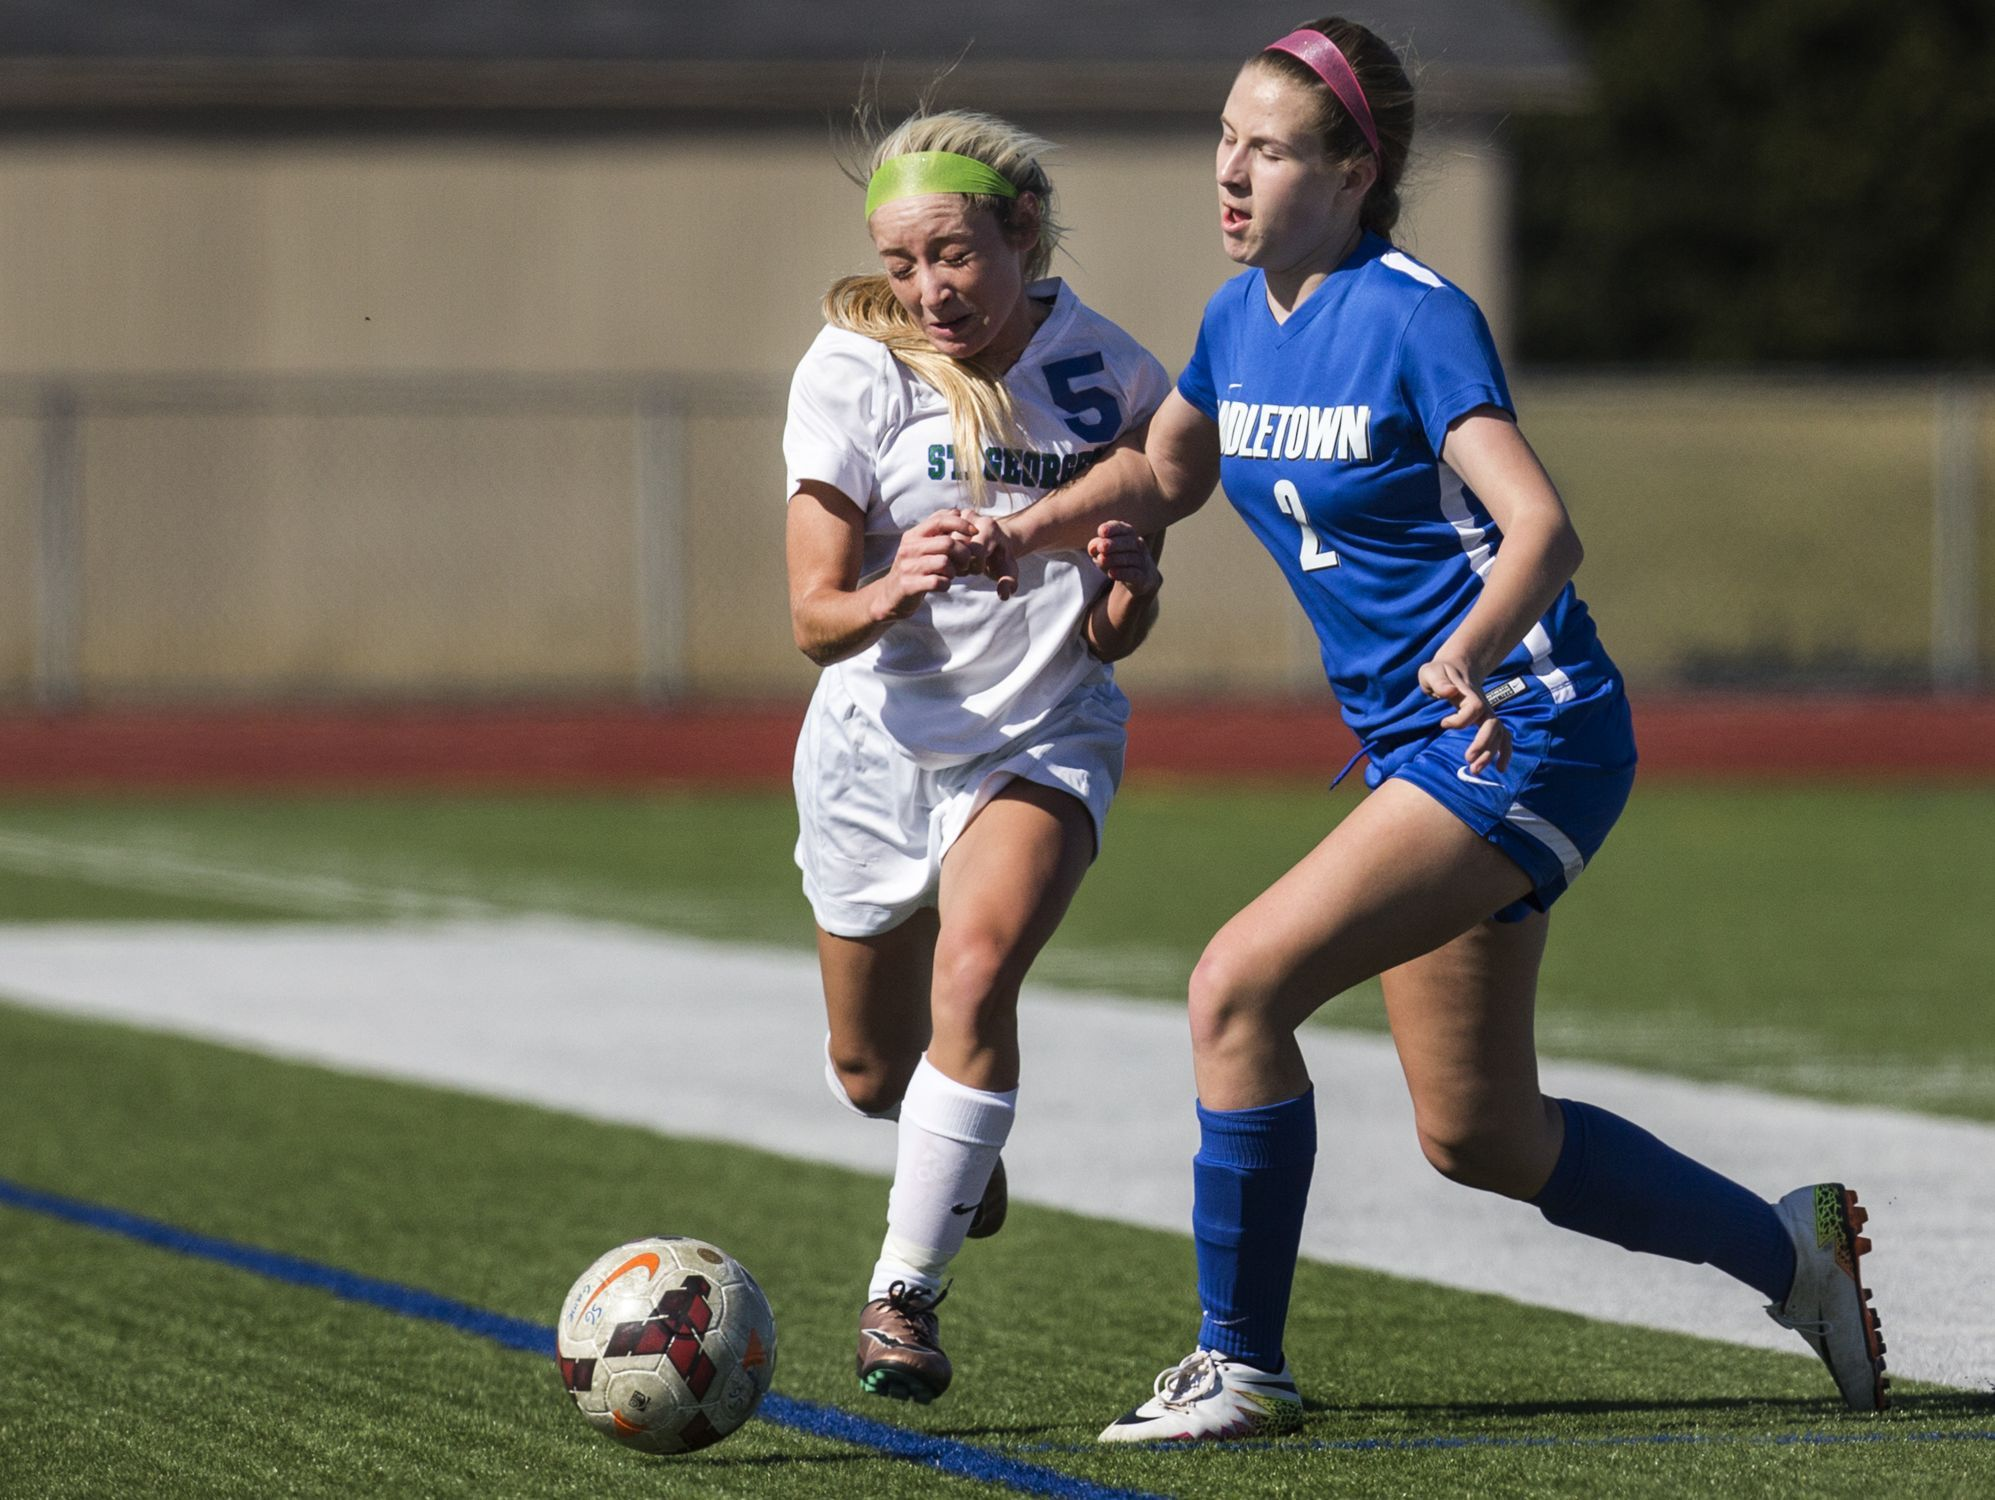 Middletown's Abigail Vetter (right) collides with St. Georges Daniella DeSouza as they chase down the ball in the first half of Middletown's 4-0 win over St. Georges at St. Georges Technical High School in Middletown on Wednesday afternoon.